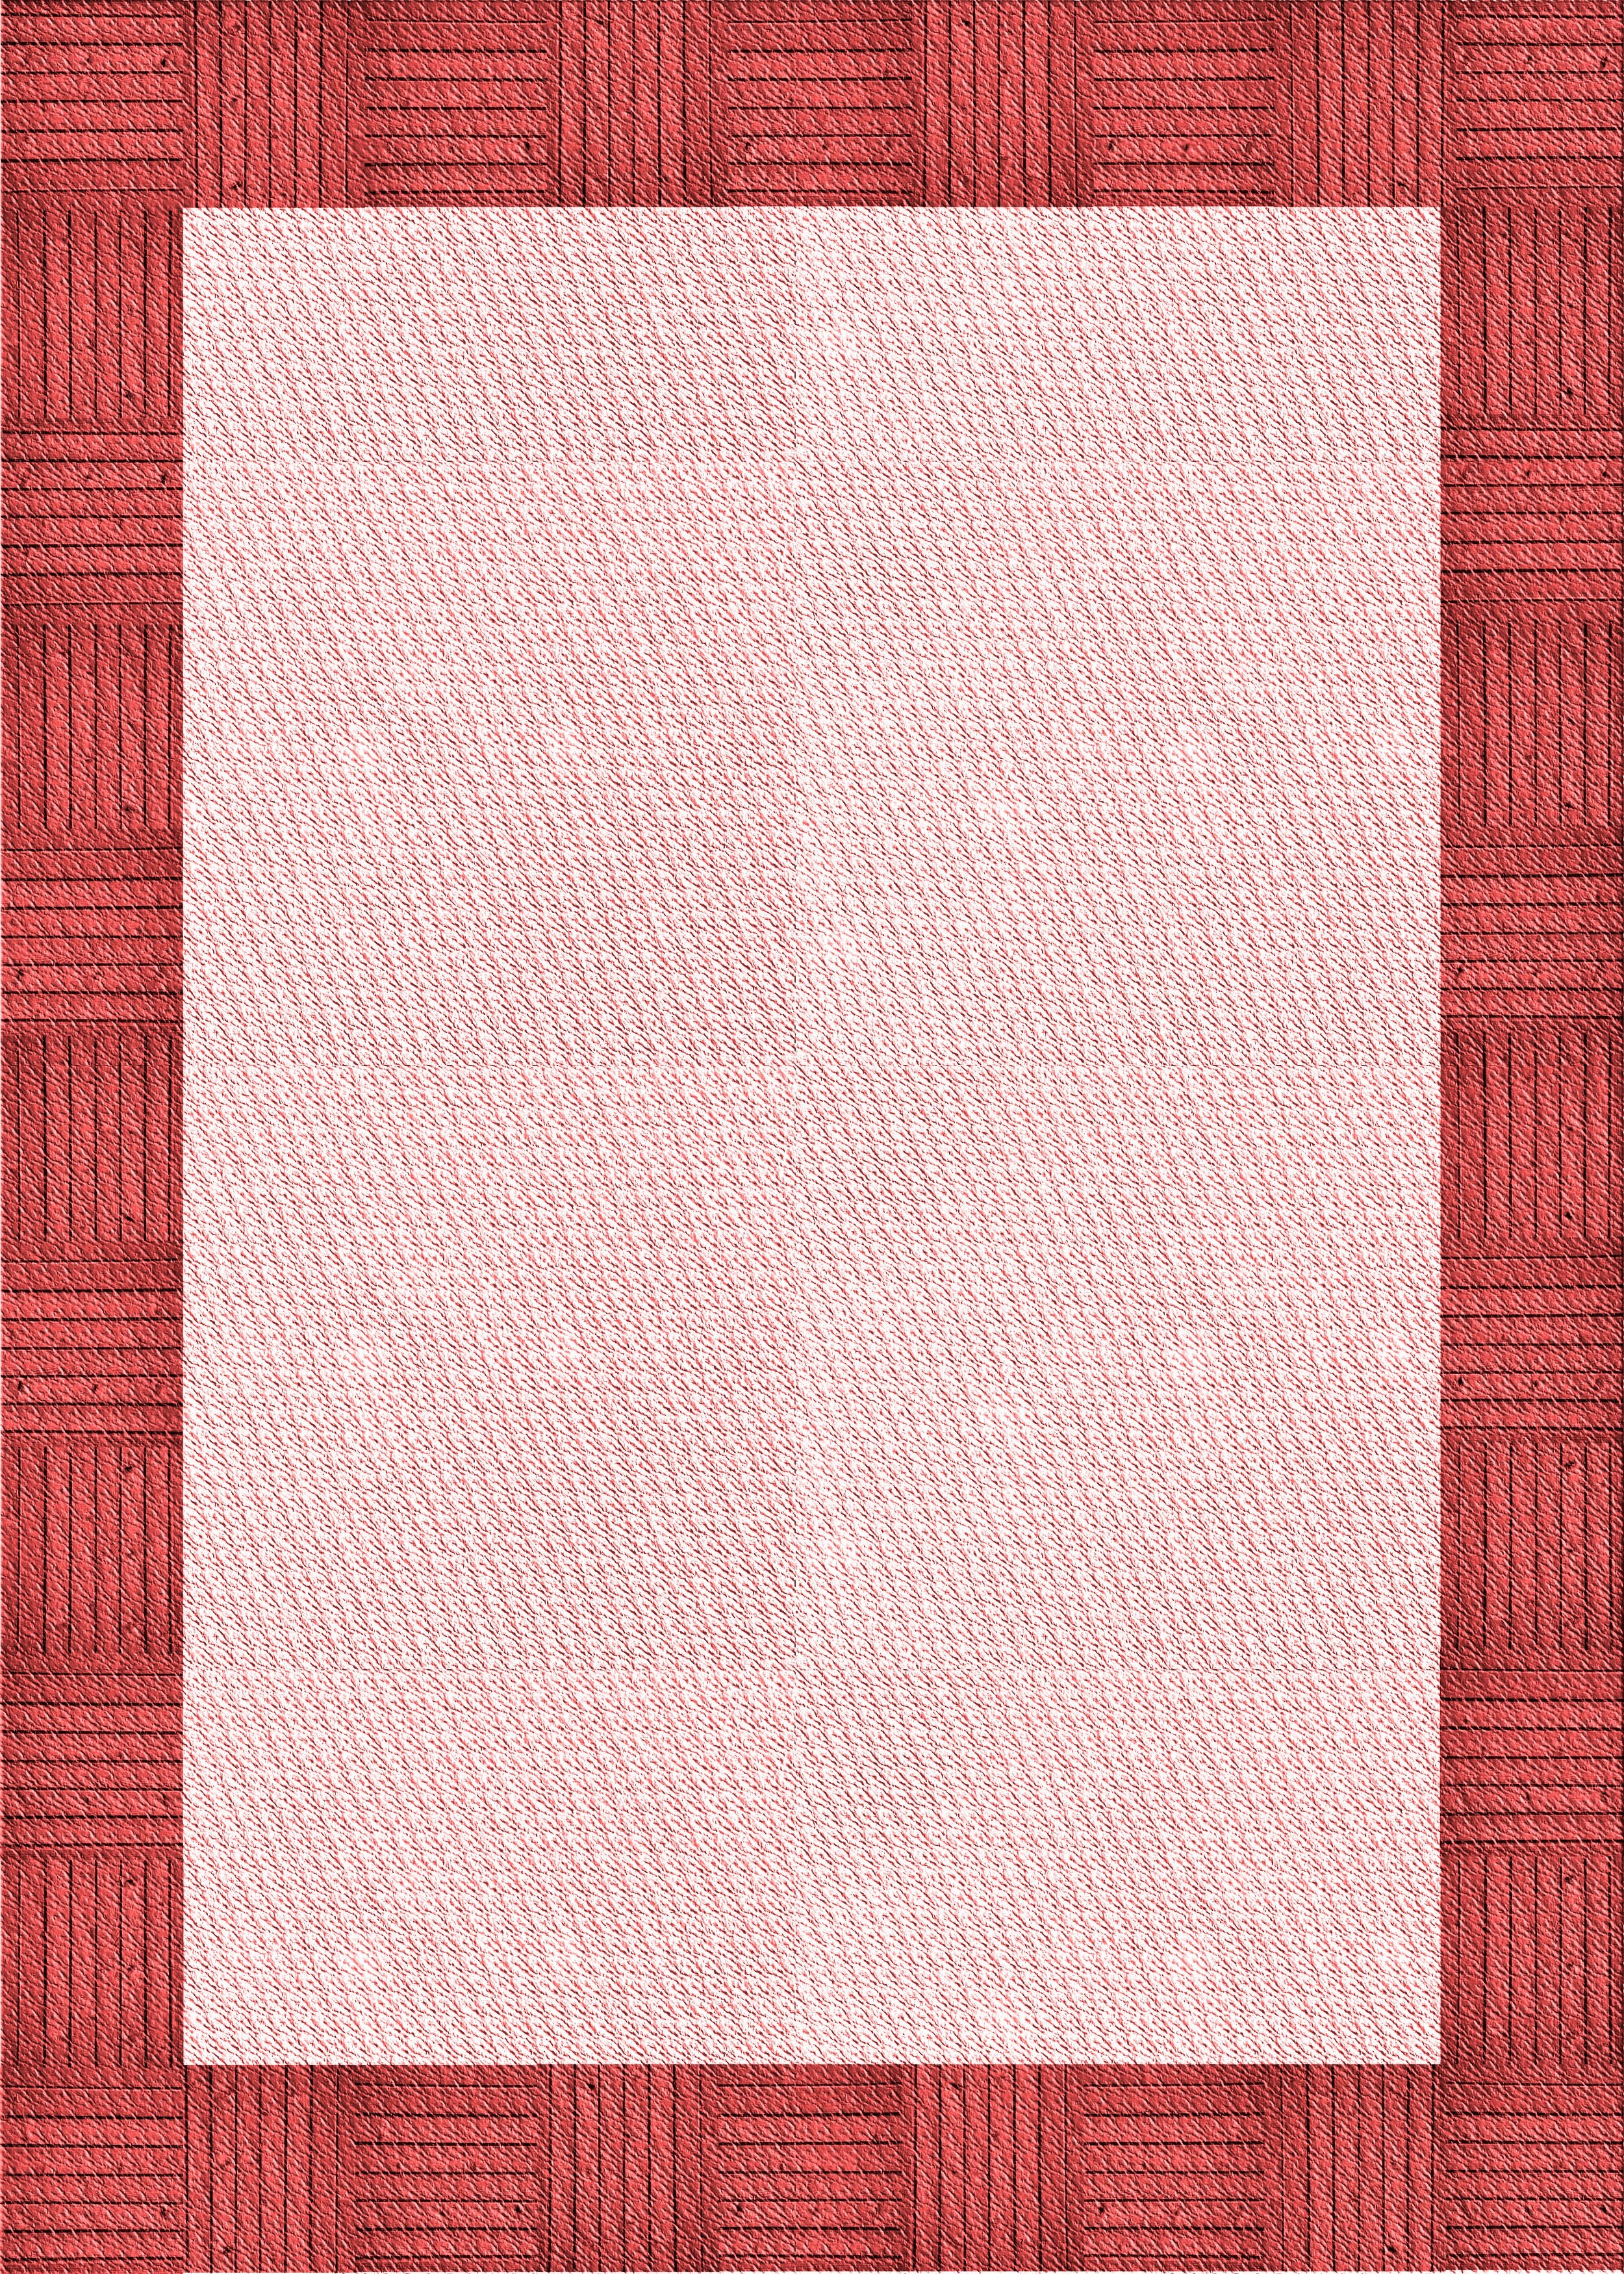 East Urban Home Plaid Wool Red Area Rug Wayfair